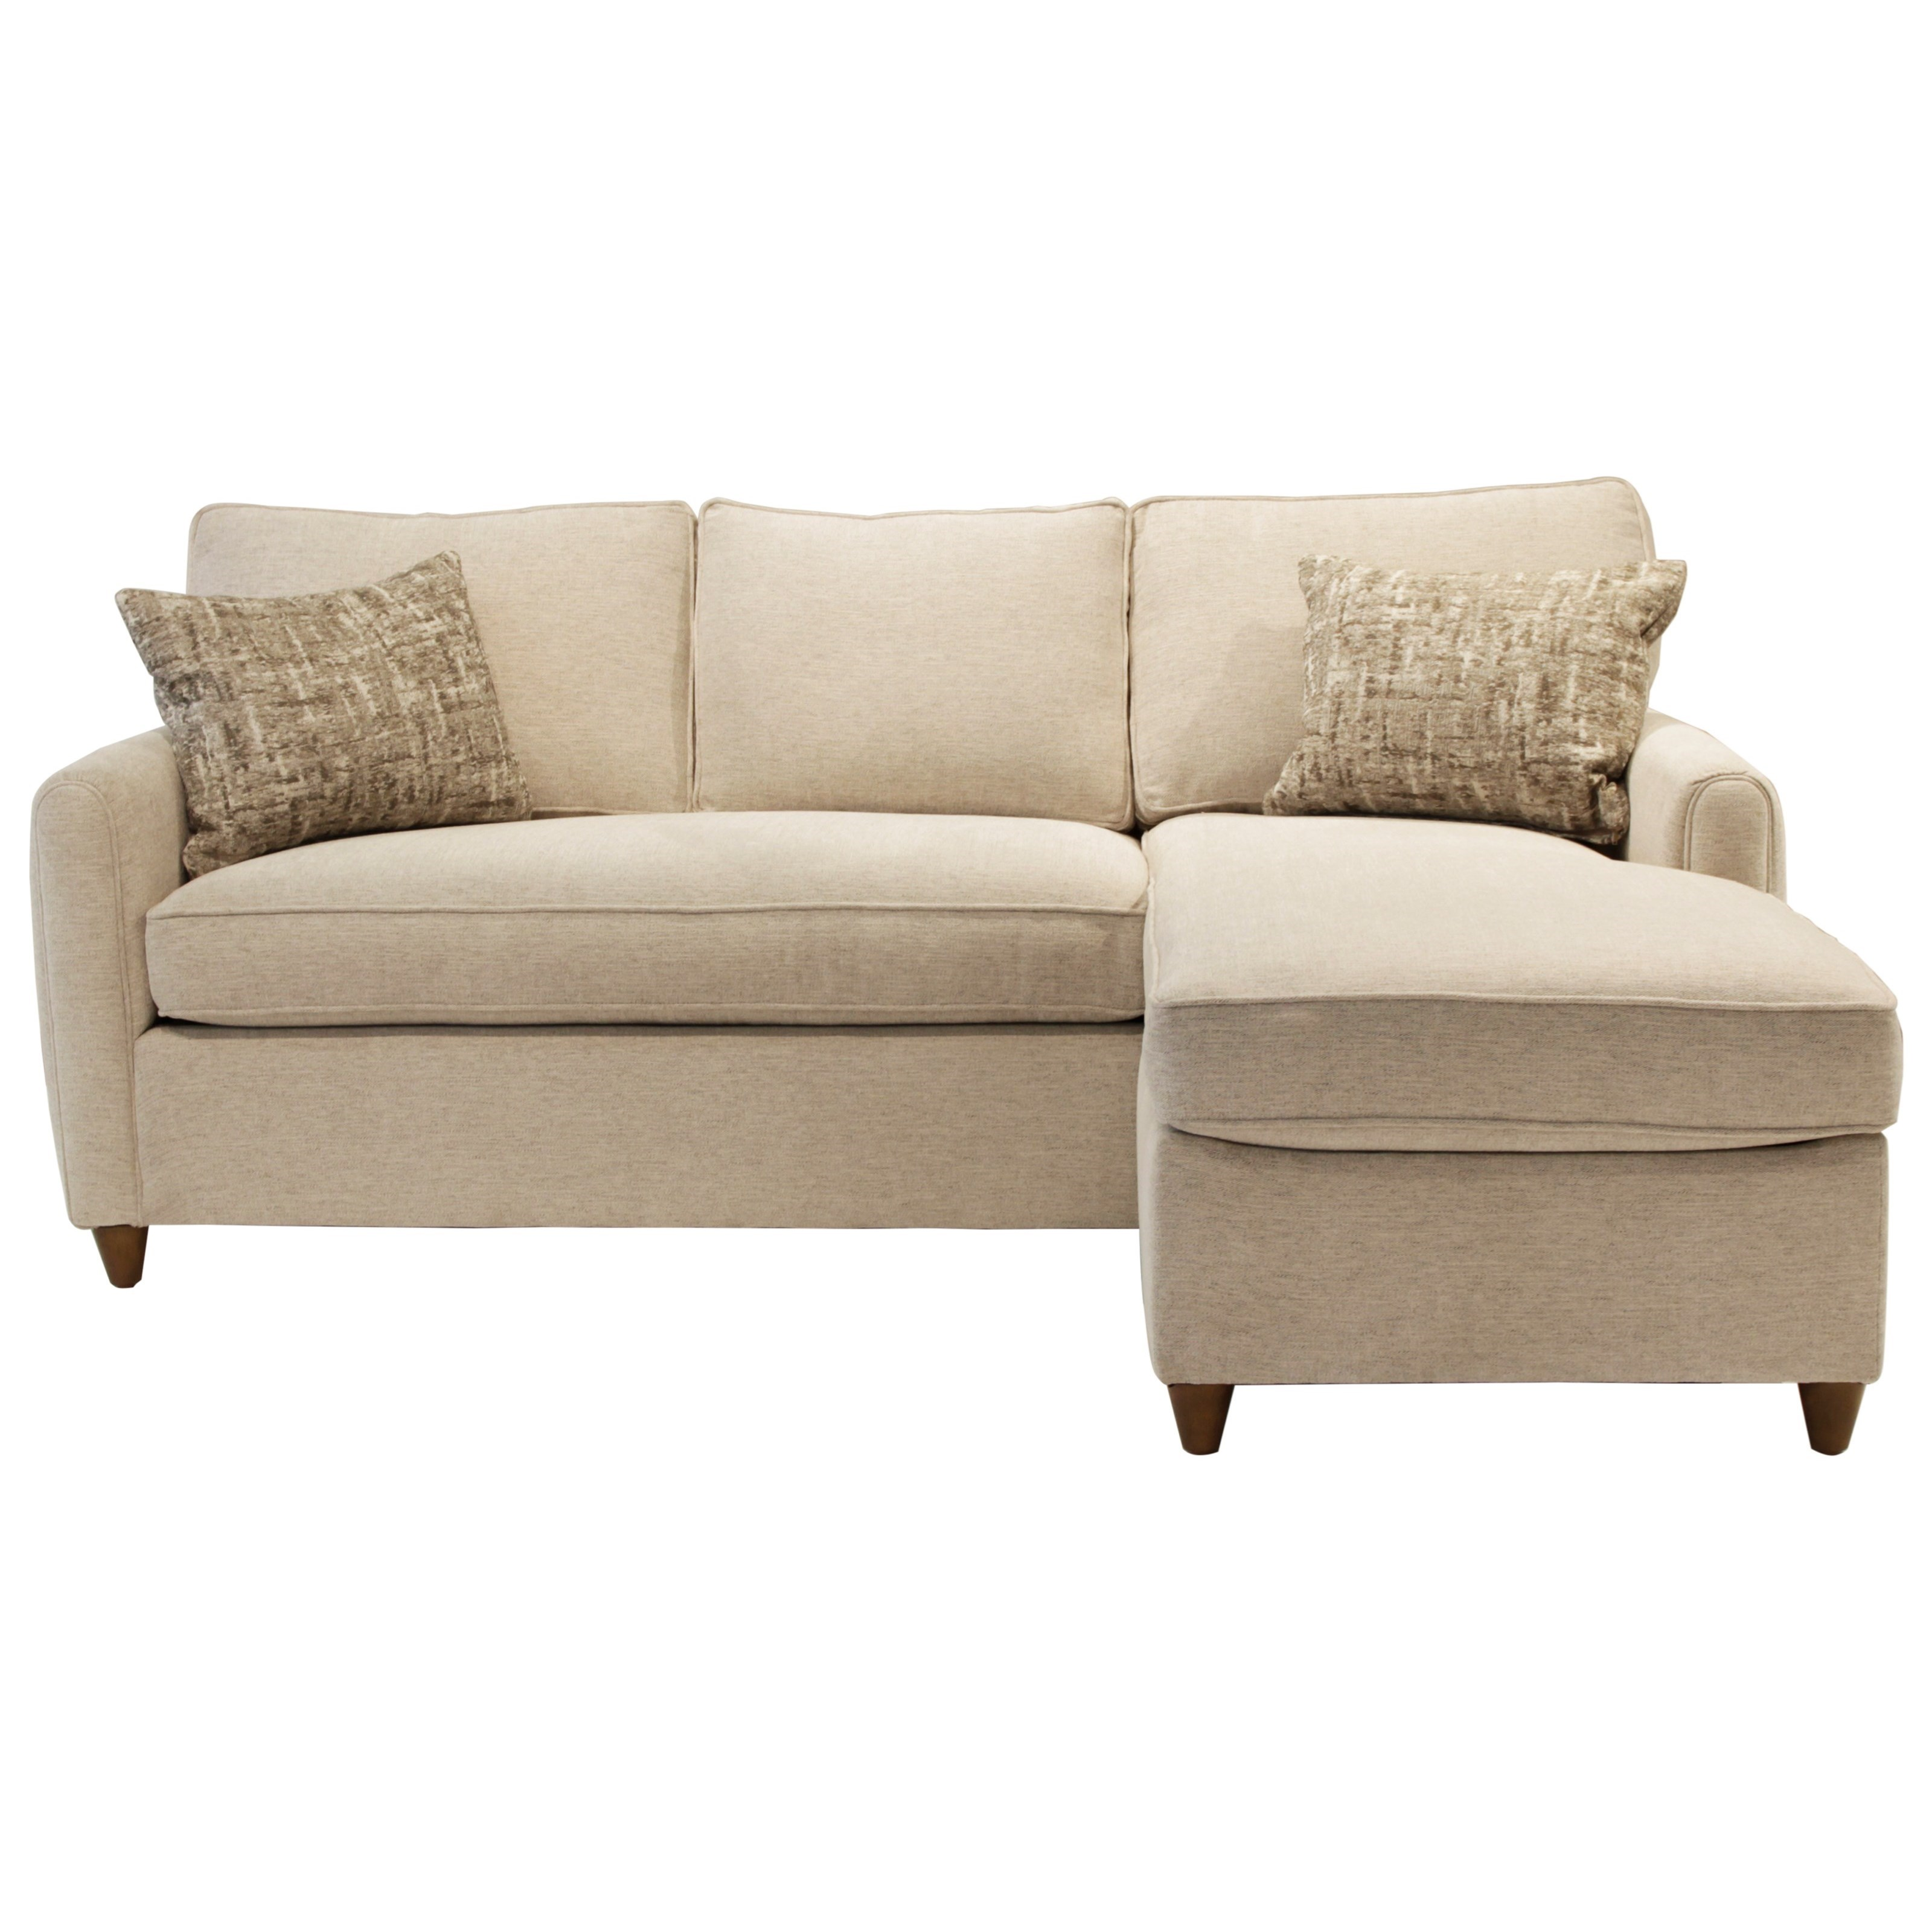 Jonathan Louis Emory Sofa with Chaise - Item Number: 036-90A+S-Merit Dove